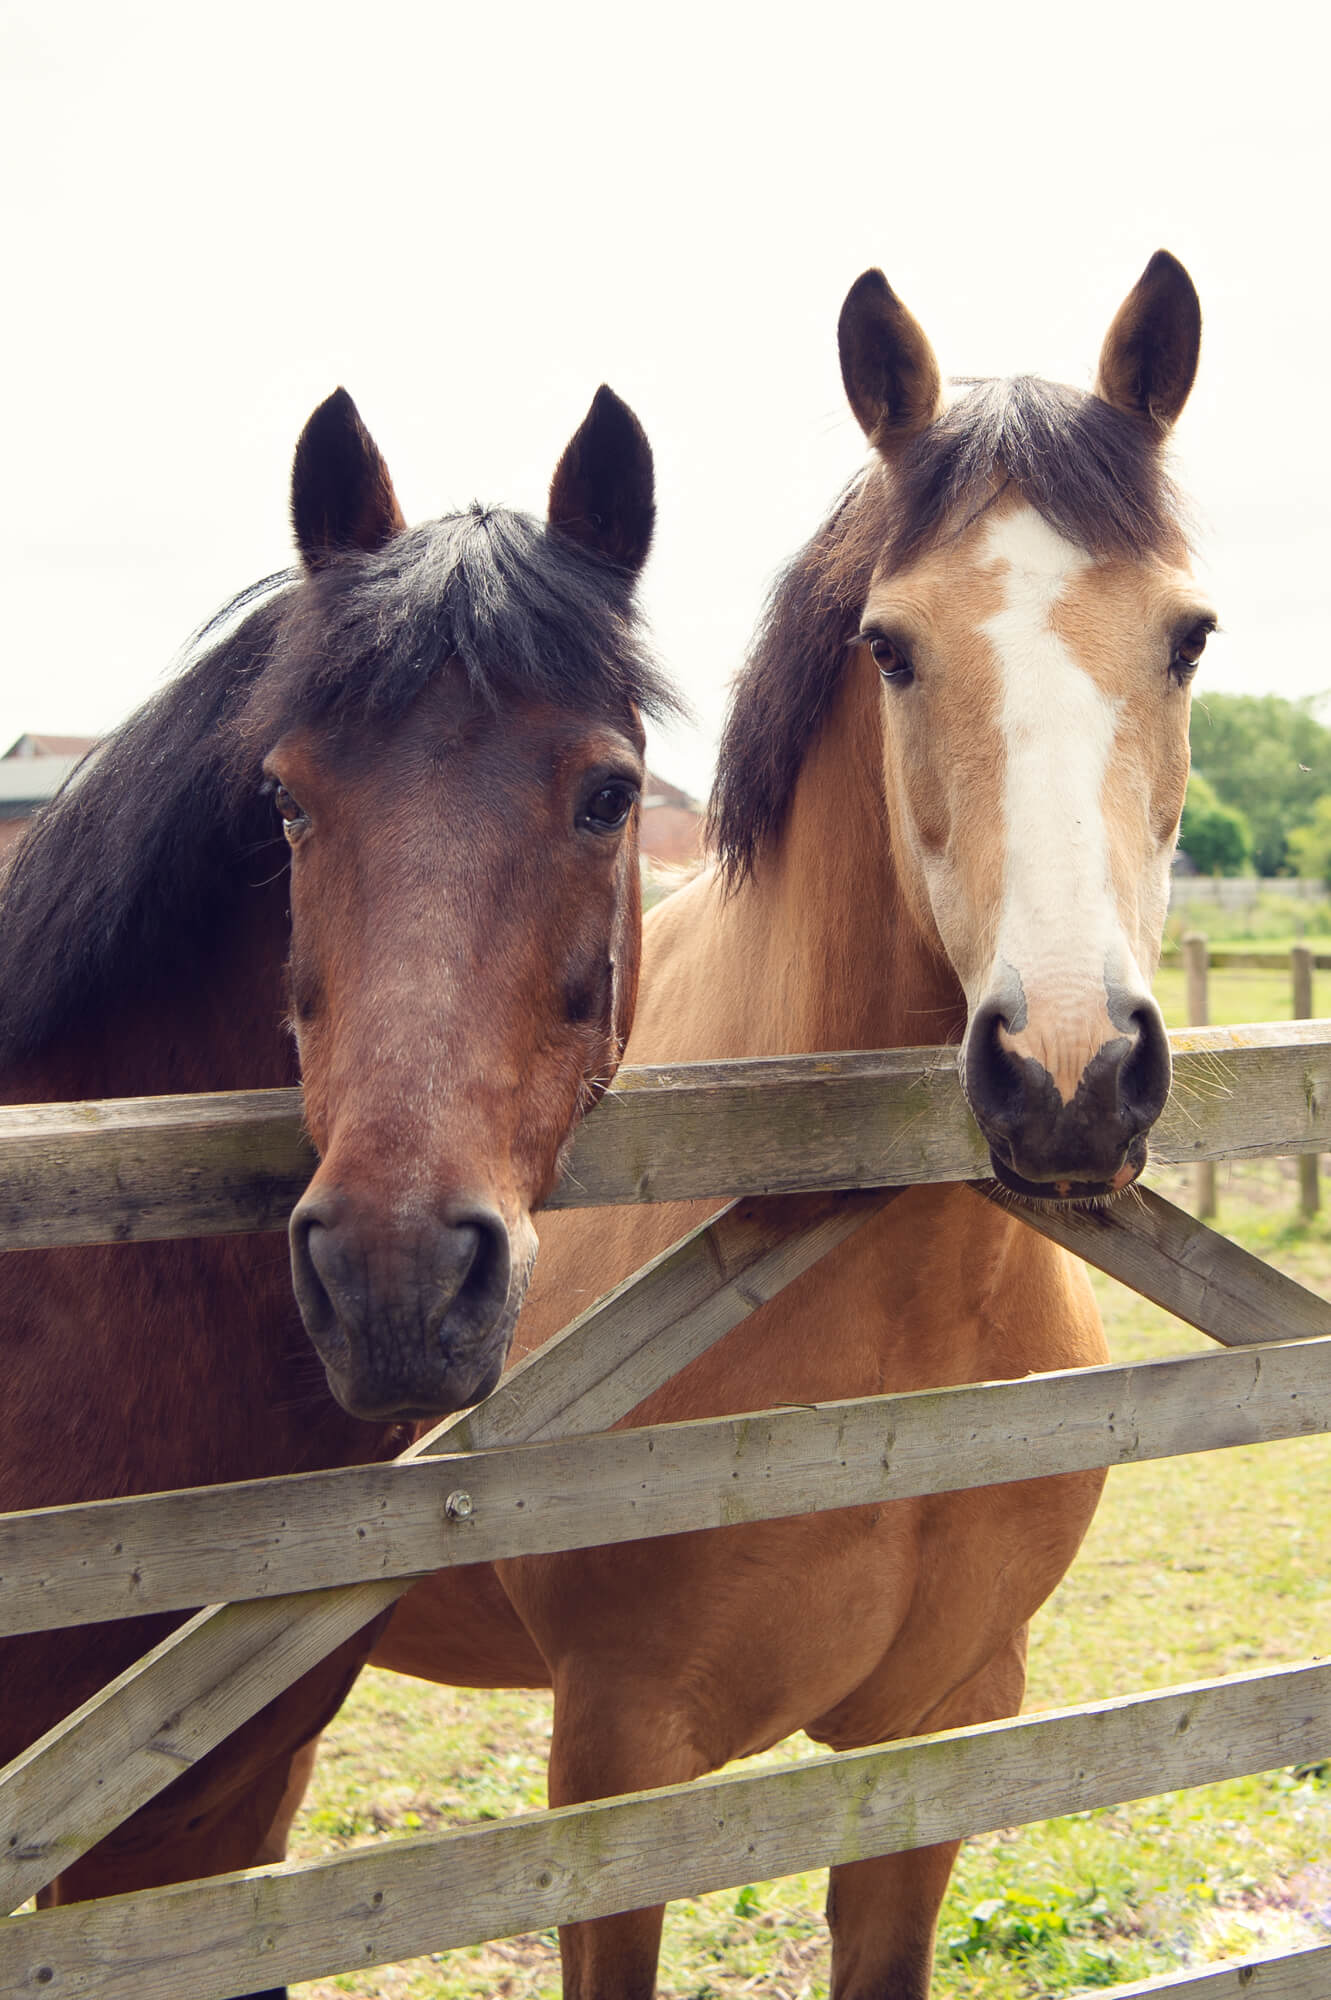 The Horses - Active Participants: Our horses are experienced and have a proven record in creating safe, effective, profound, delightful Equine Guided Learning events. We take pride in the fact that they are relaxed and happy and willing to show up for the work.